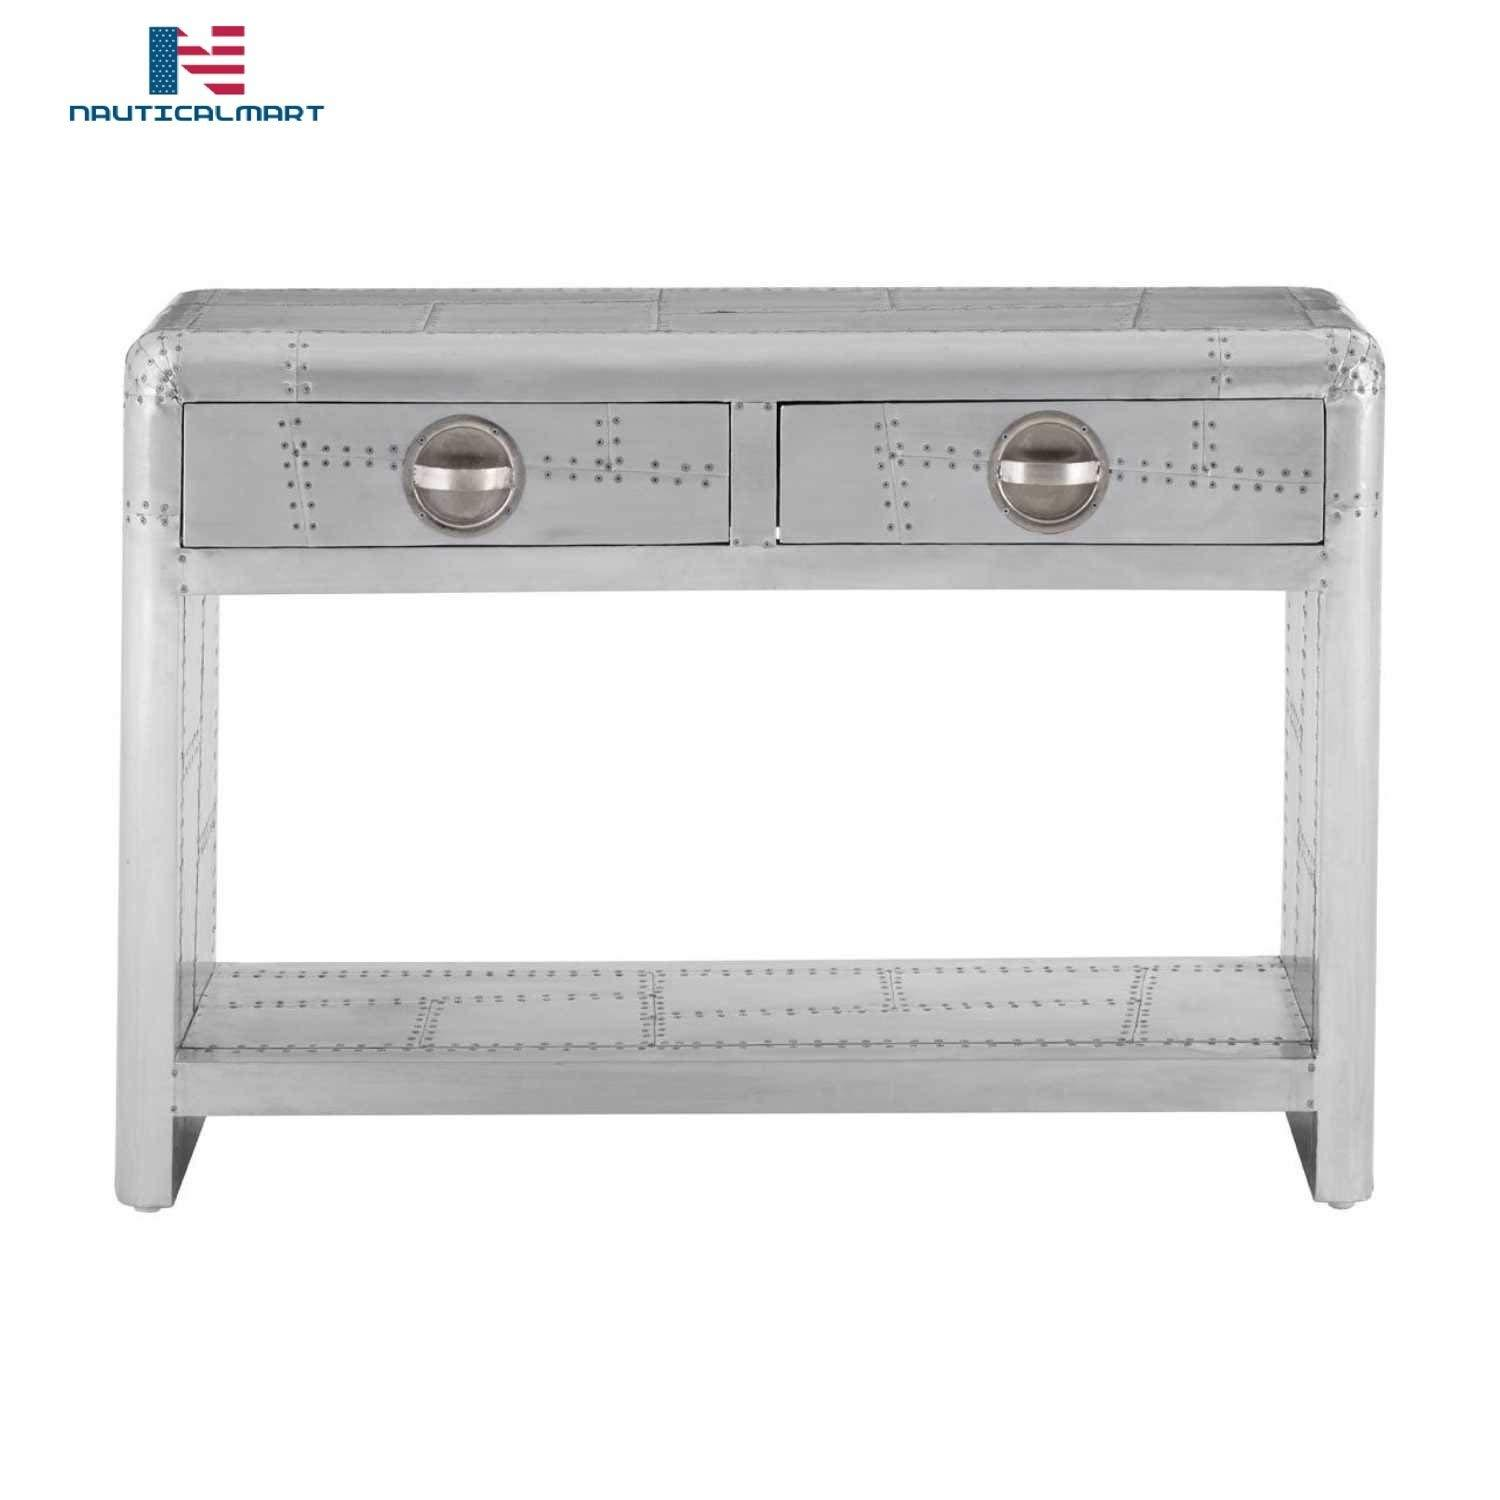 Primary image for NauticalMart Aviator Aluminium Patchwork Style Console Table with 2 Drawers